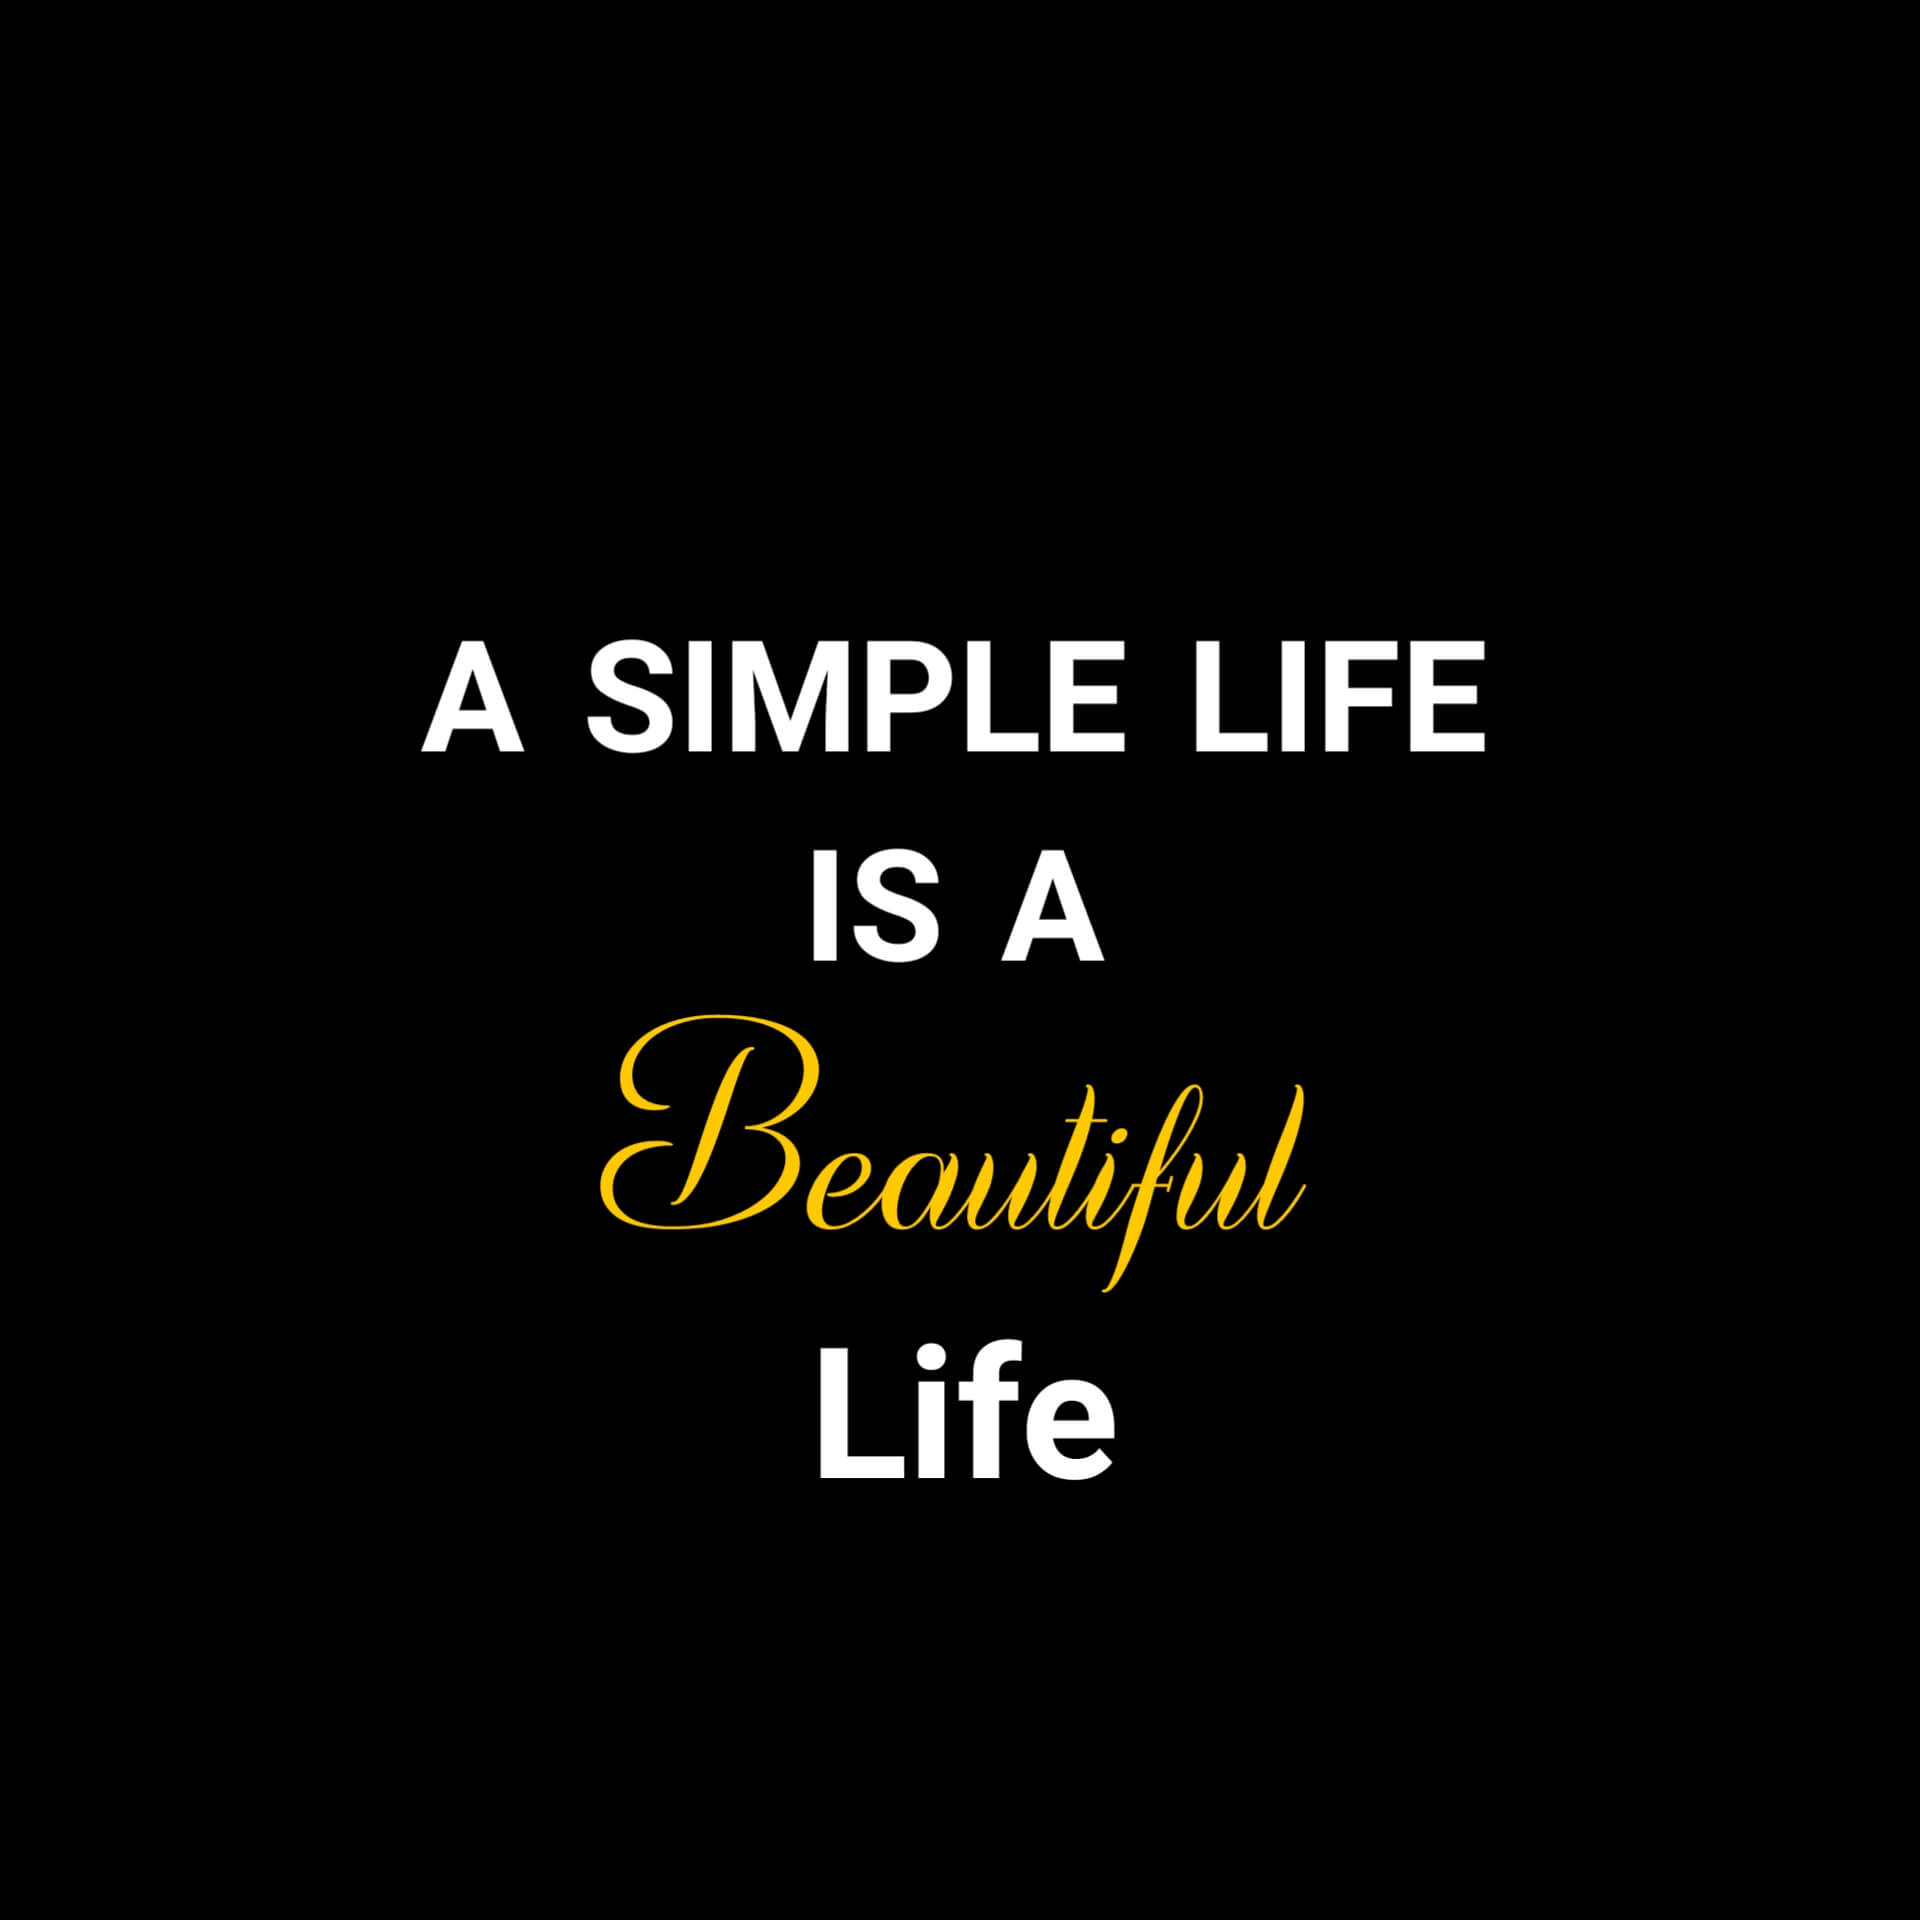 A Simple Life Is a Beautiful Life DP